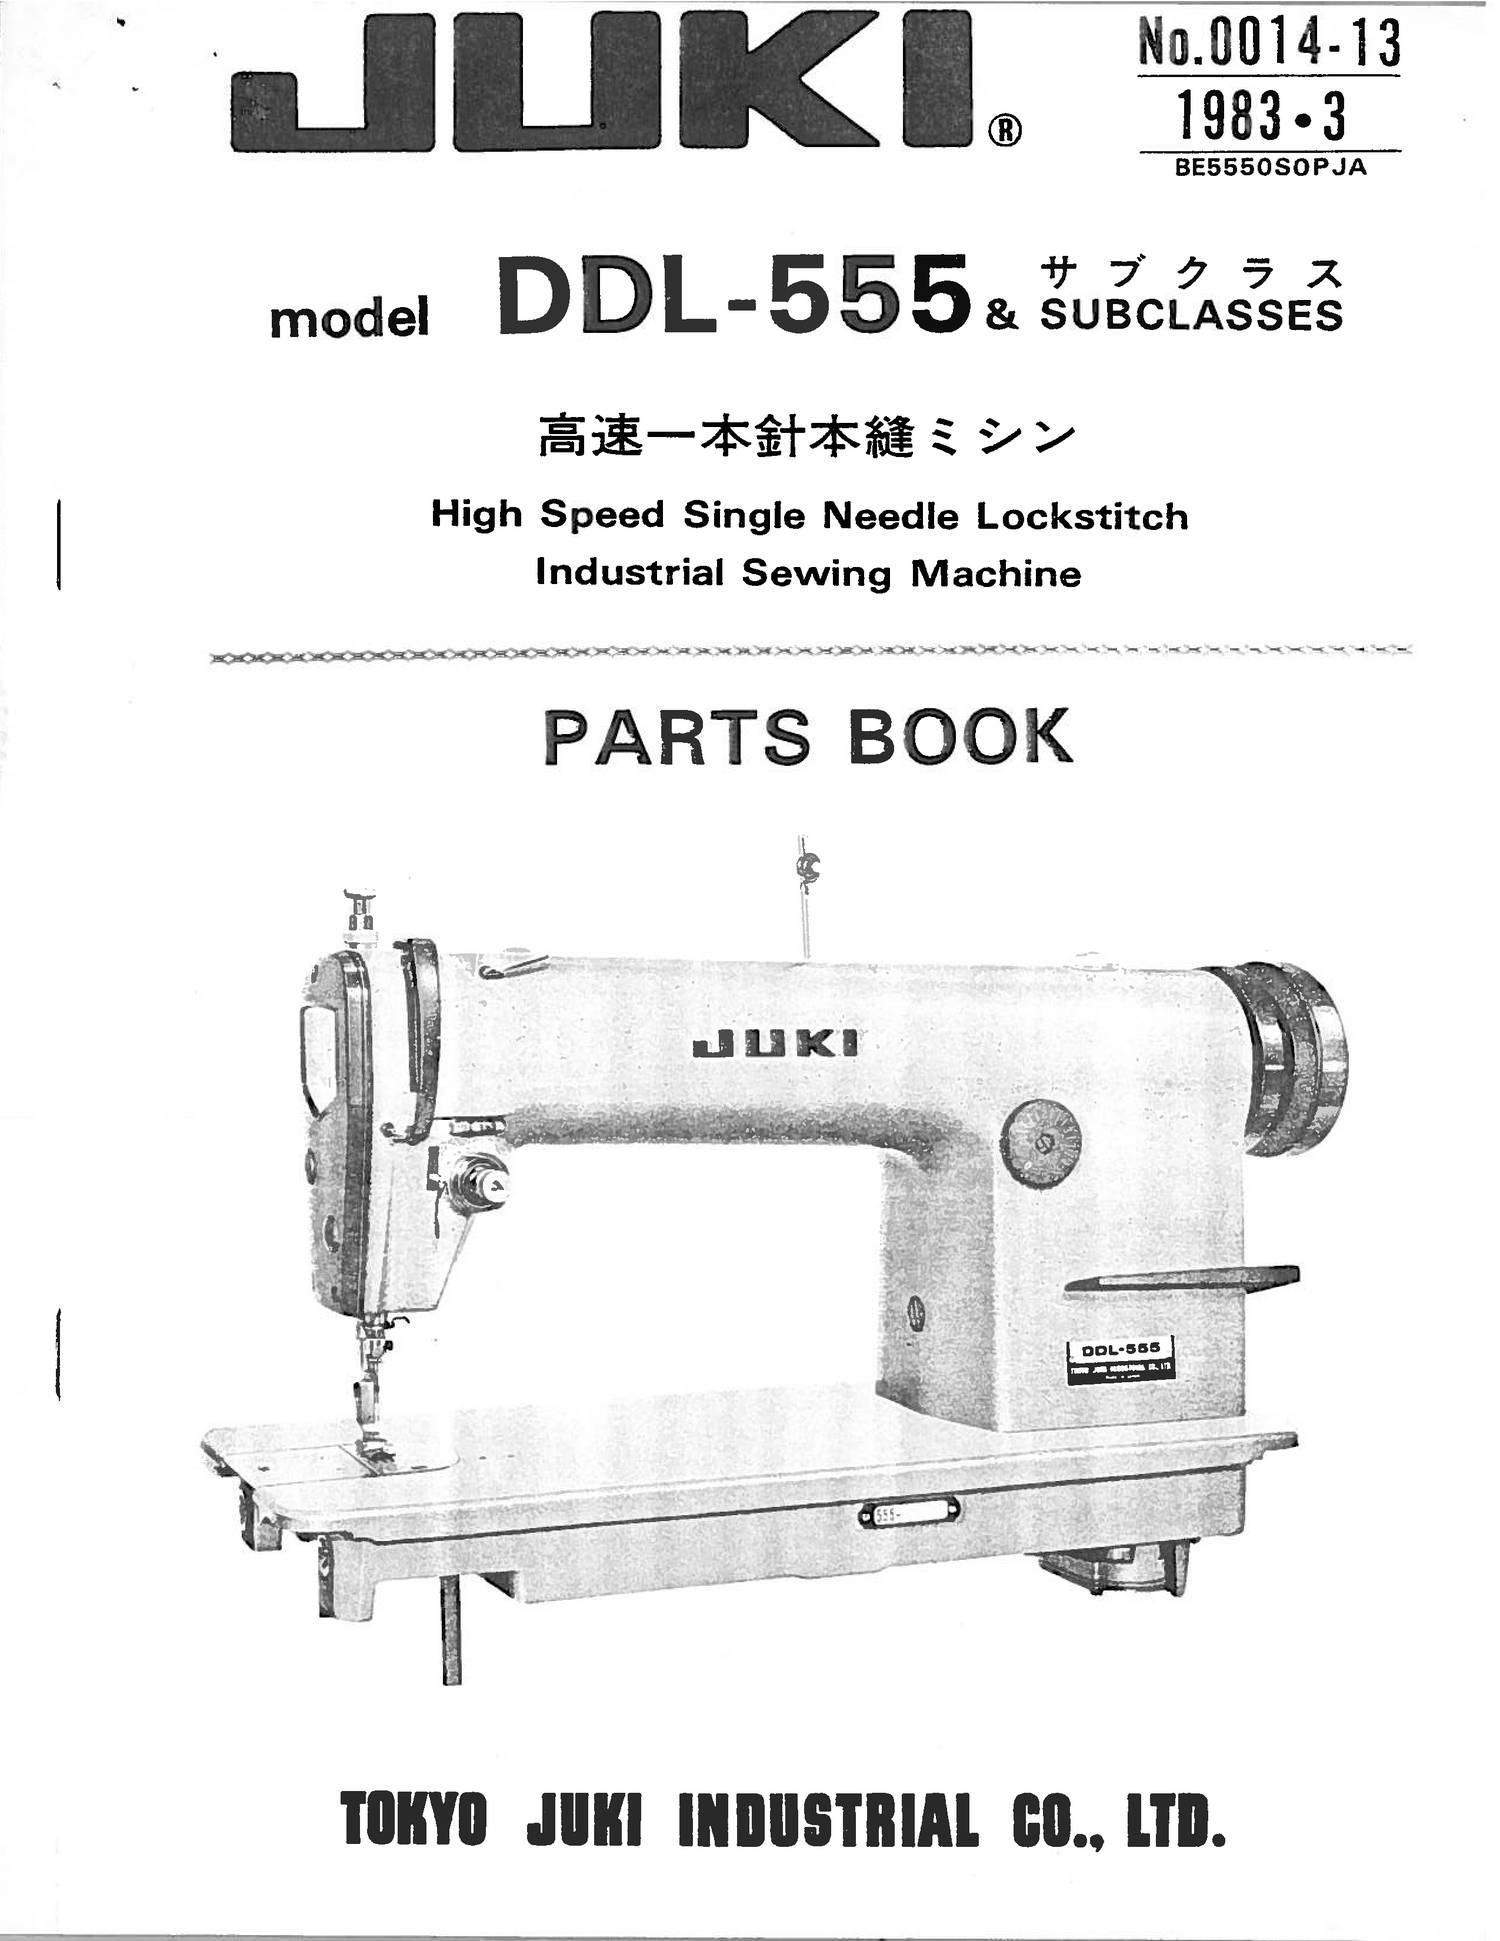 juki ddl 555 parts pdf docdroid rh docdroid net Juki DDL 5550 Juki Single Needle Lockstitch Machine